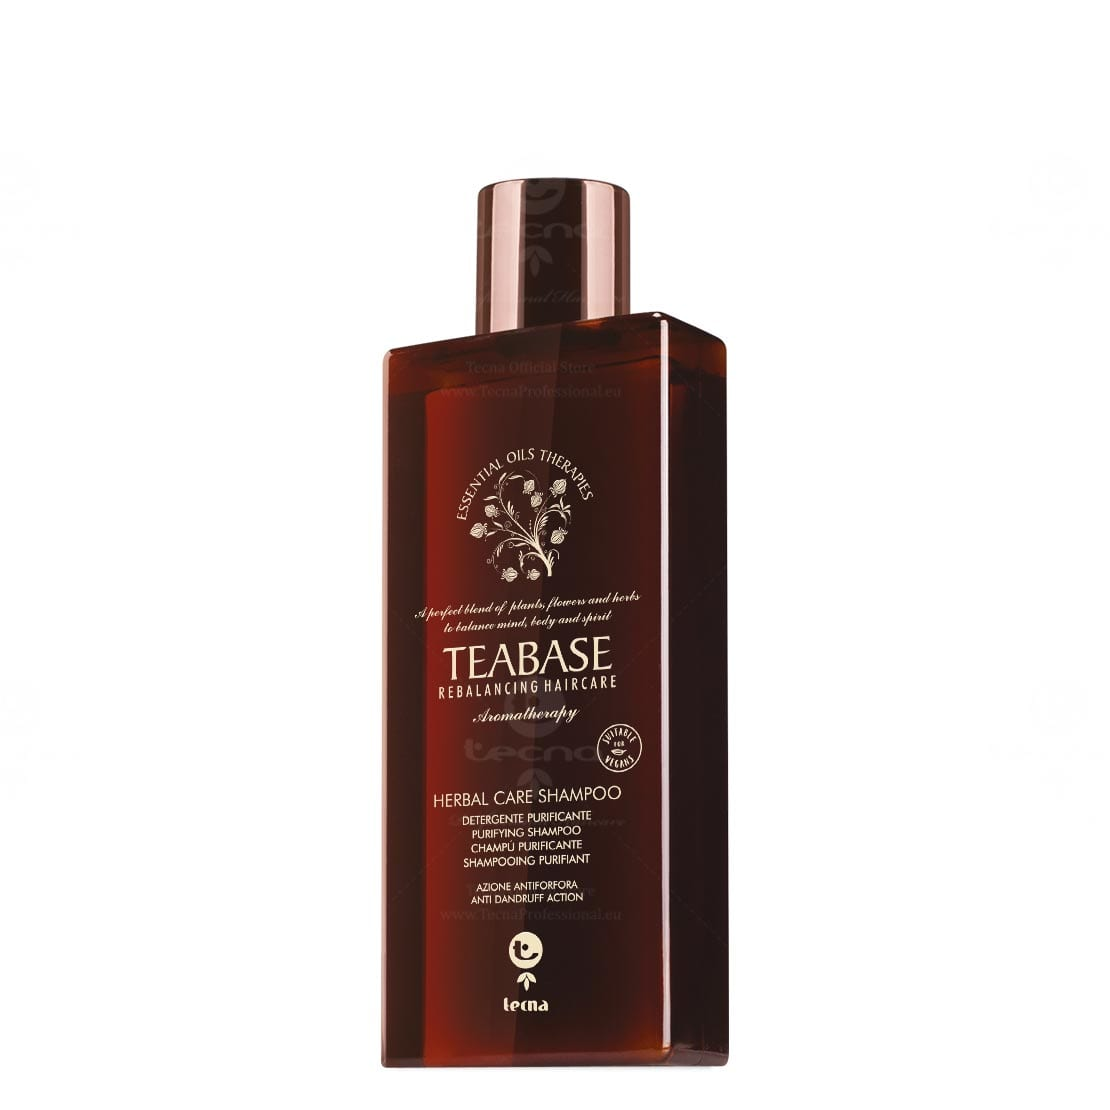 Shampoo Herbal Care Teabase di Tecna antiforfora